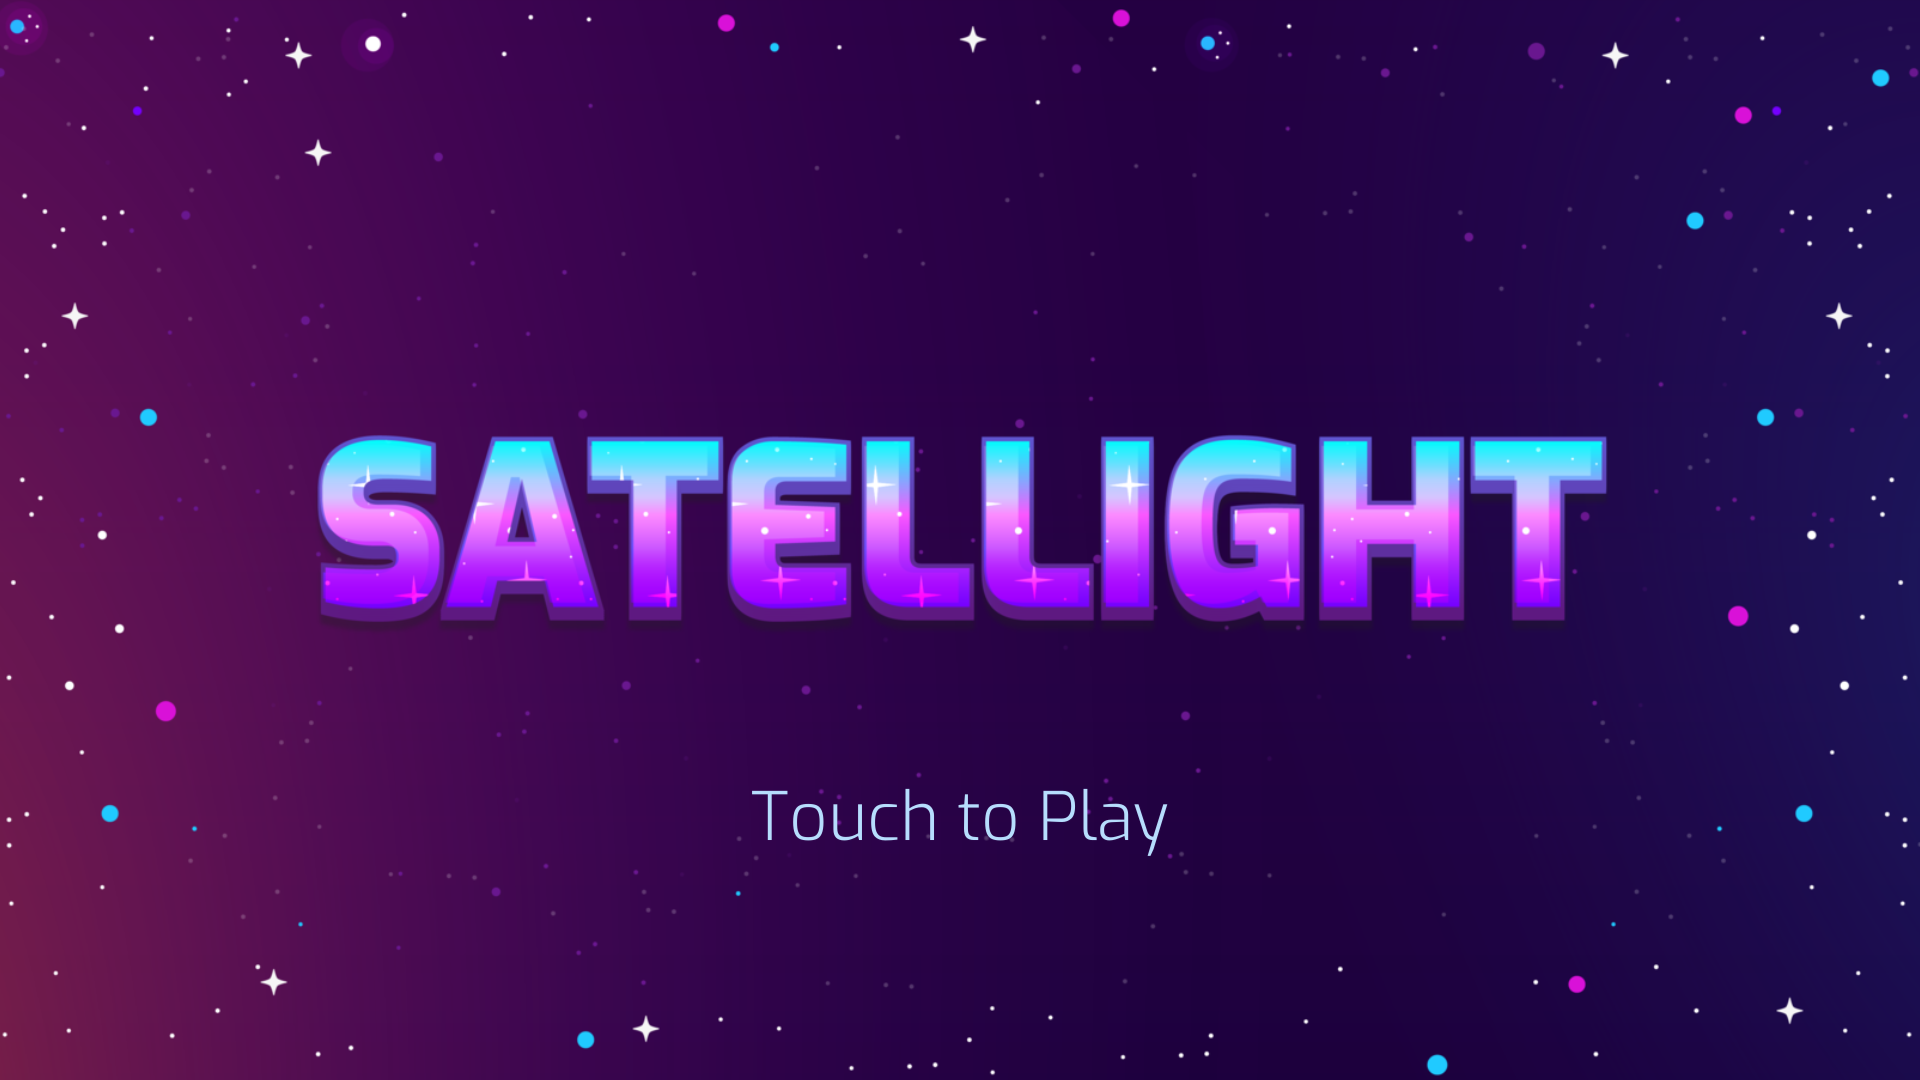 Satellight